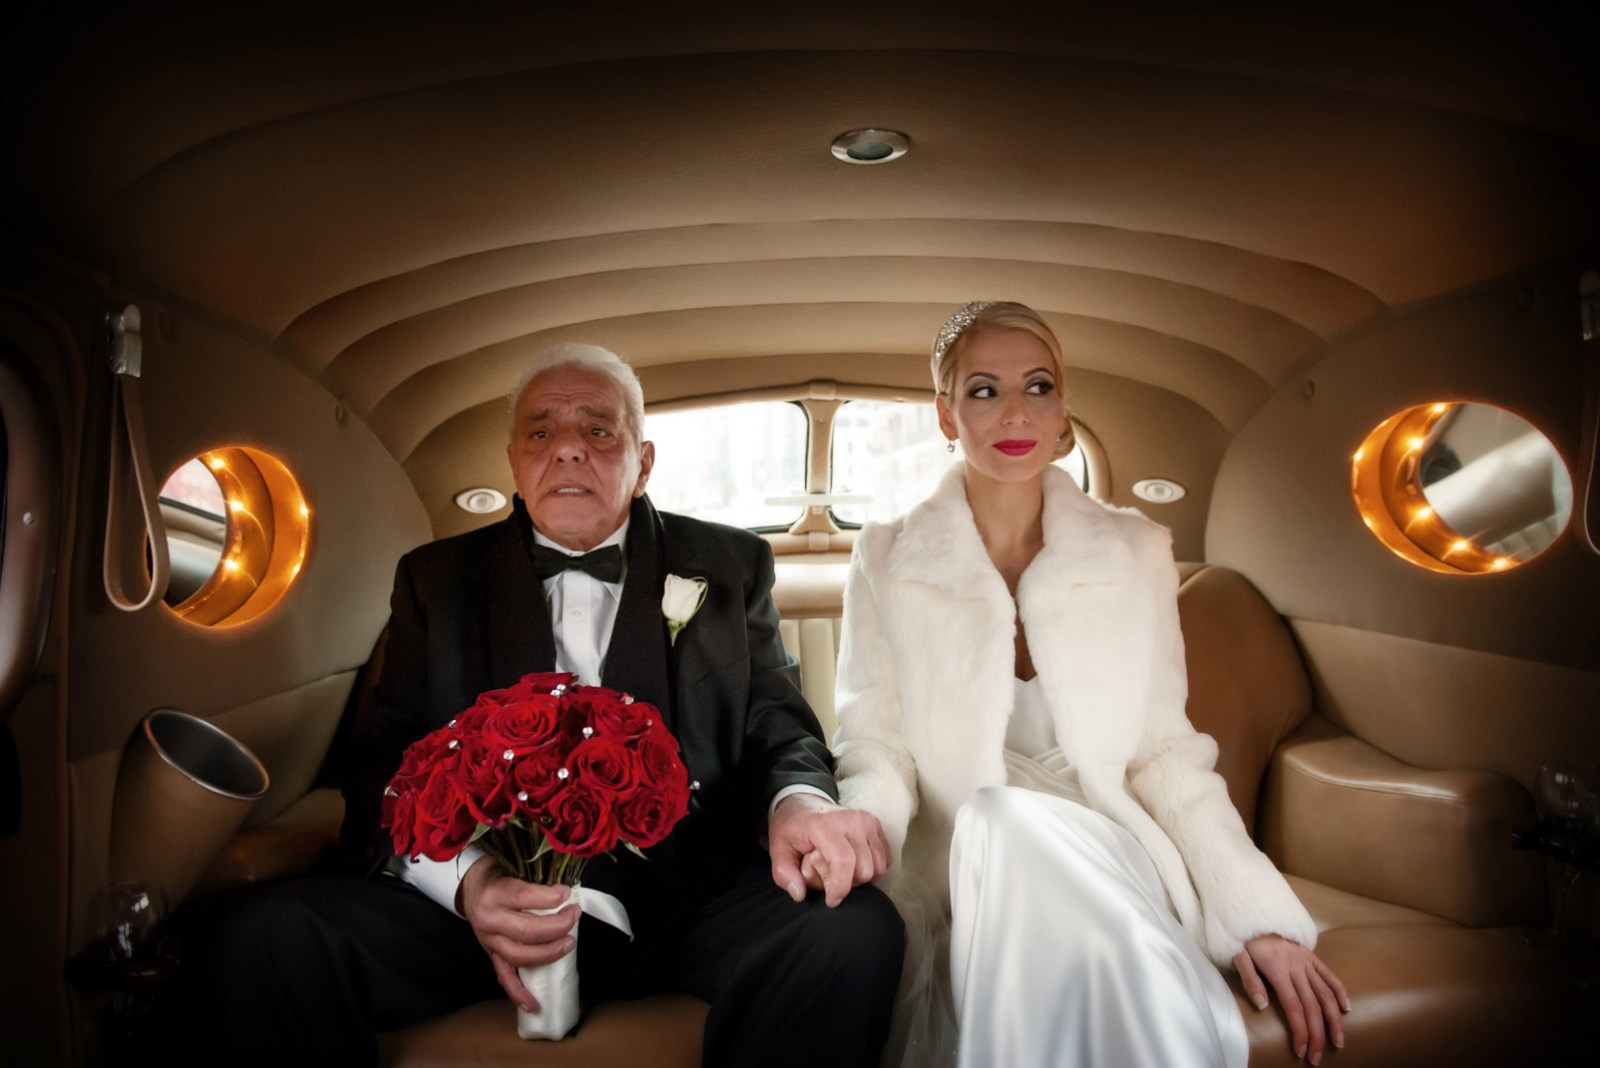 Father of the Bride and his daughter driving to wedding ceremony in classic car